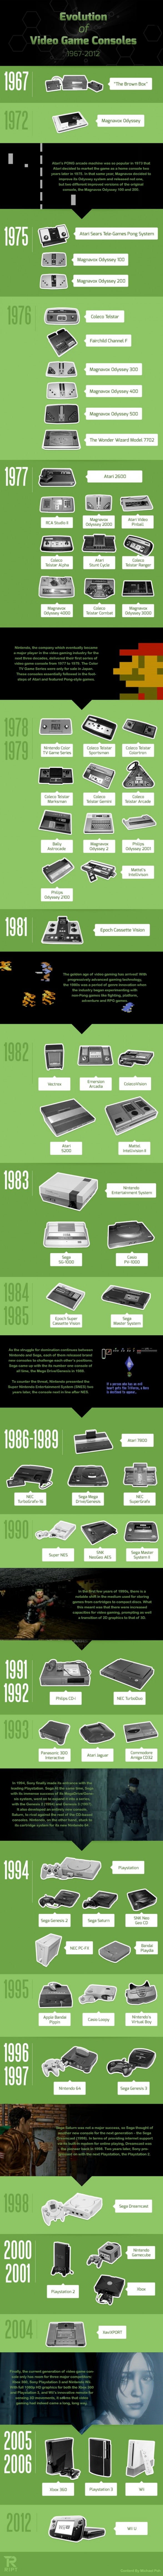 Evolution of the video game console 1967-2012